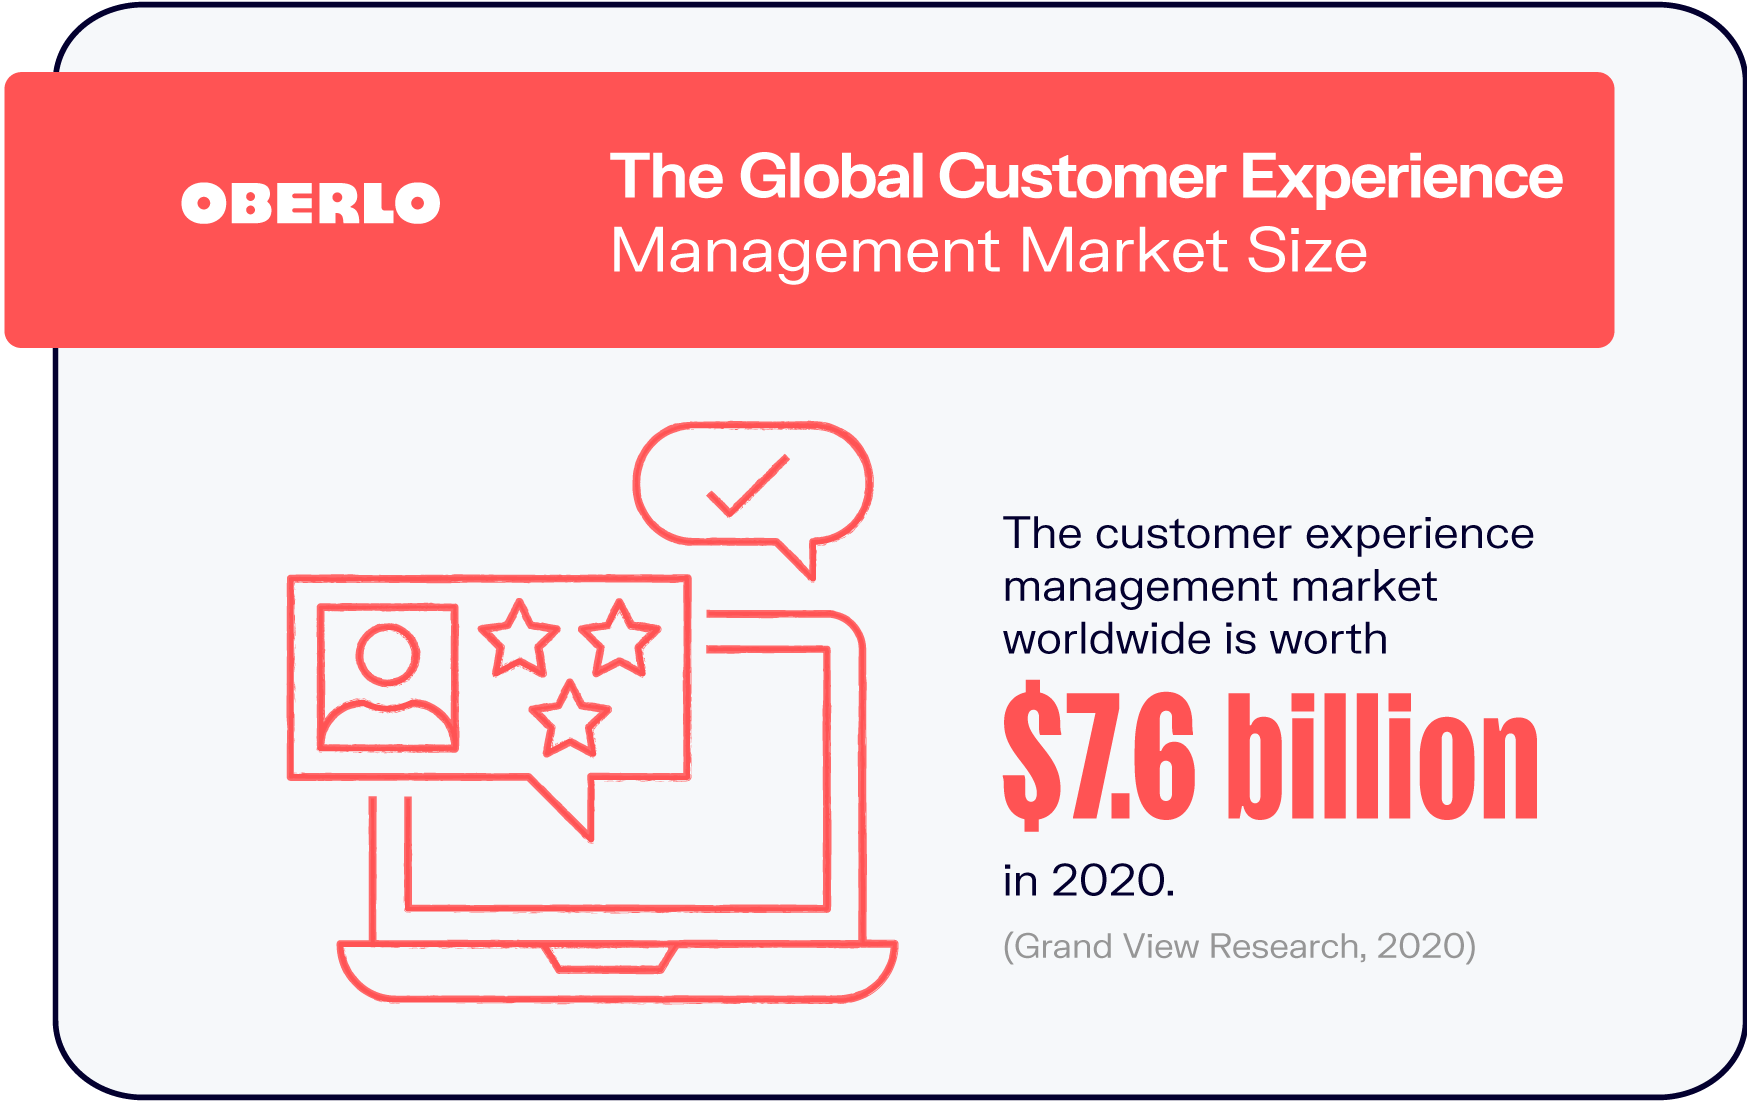 The Global Customer Experience Management Market Size